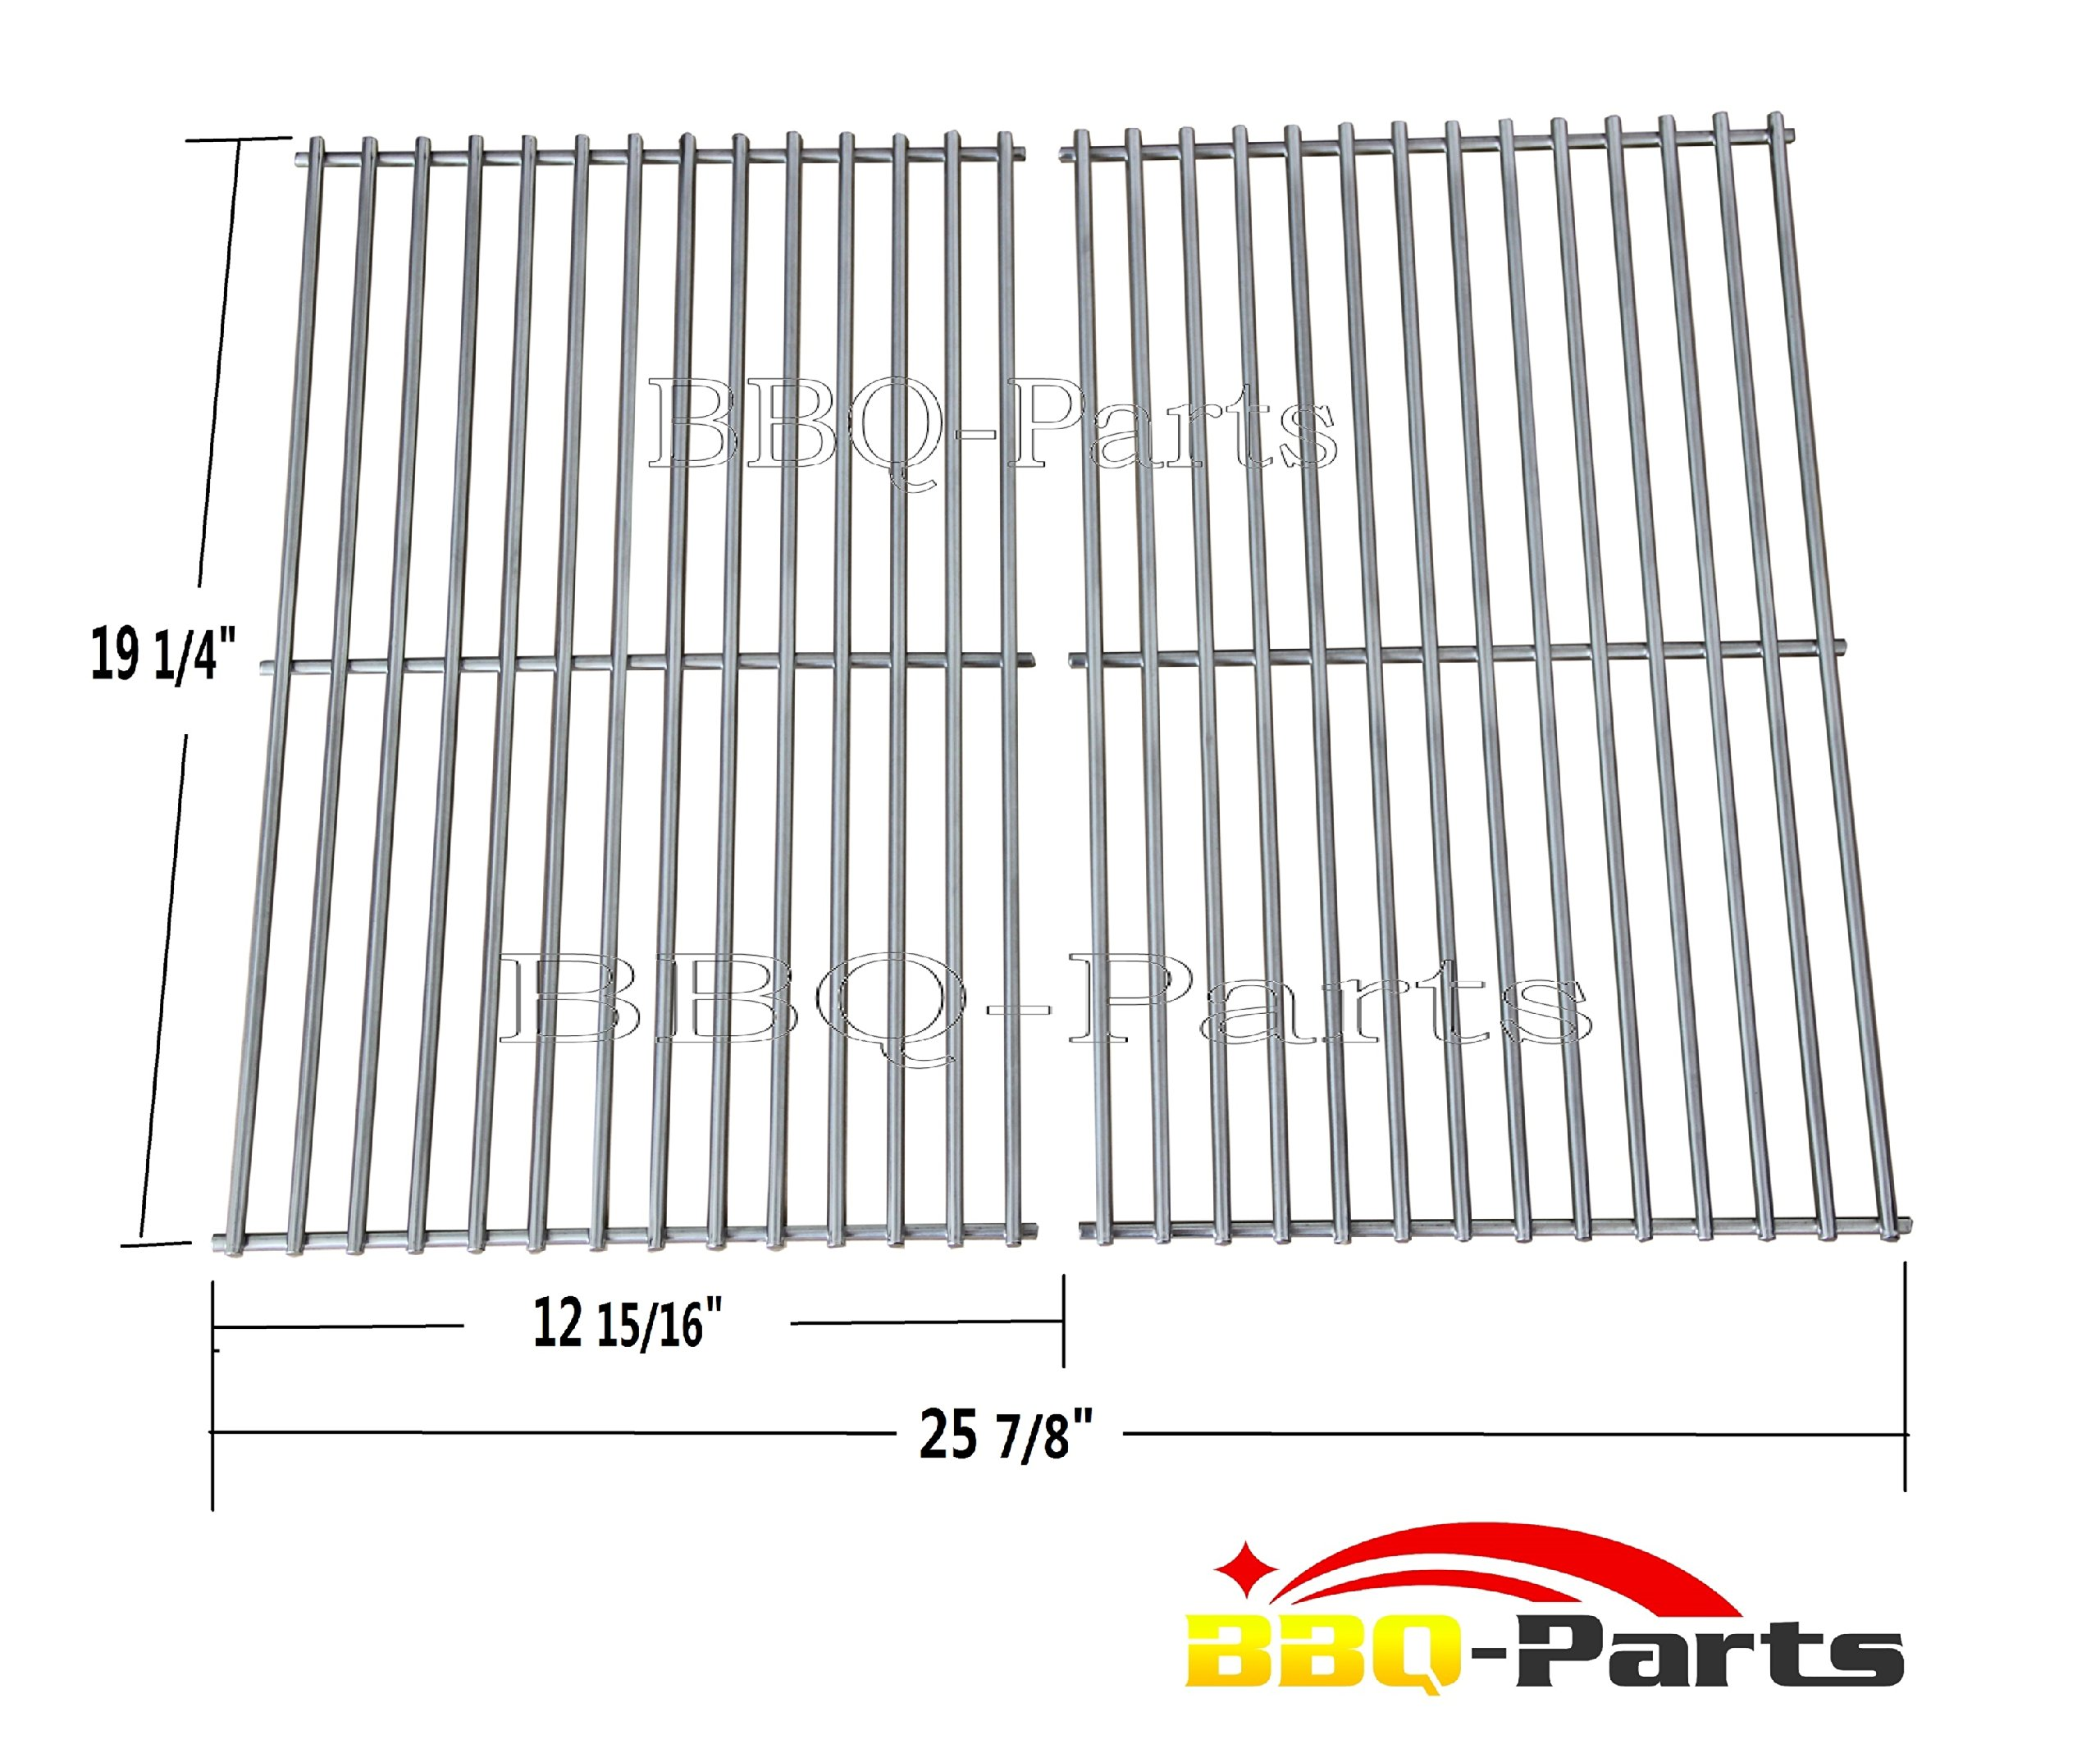 Scf3s2 Bbq Stainless Steel Wire Cooking Grid Replacement